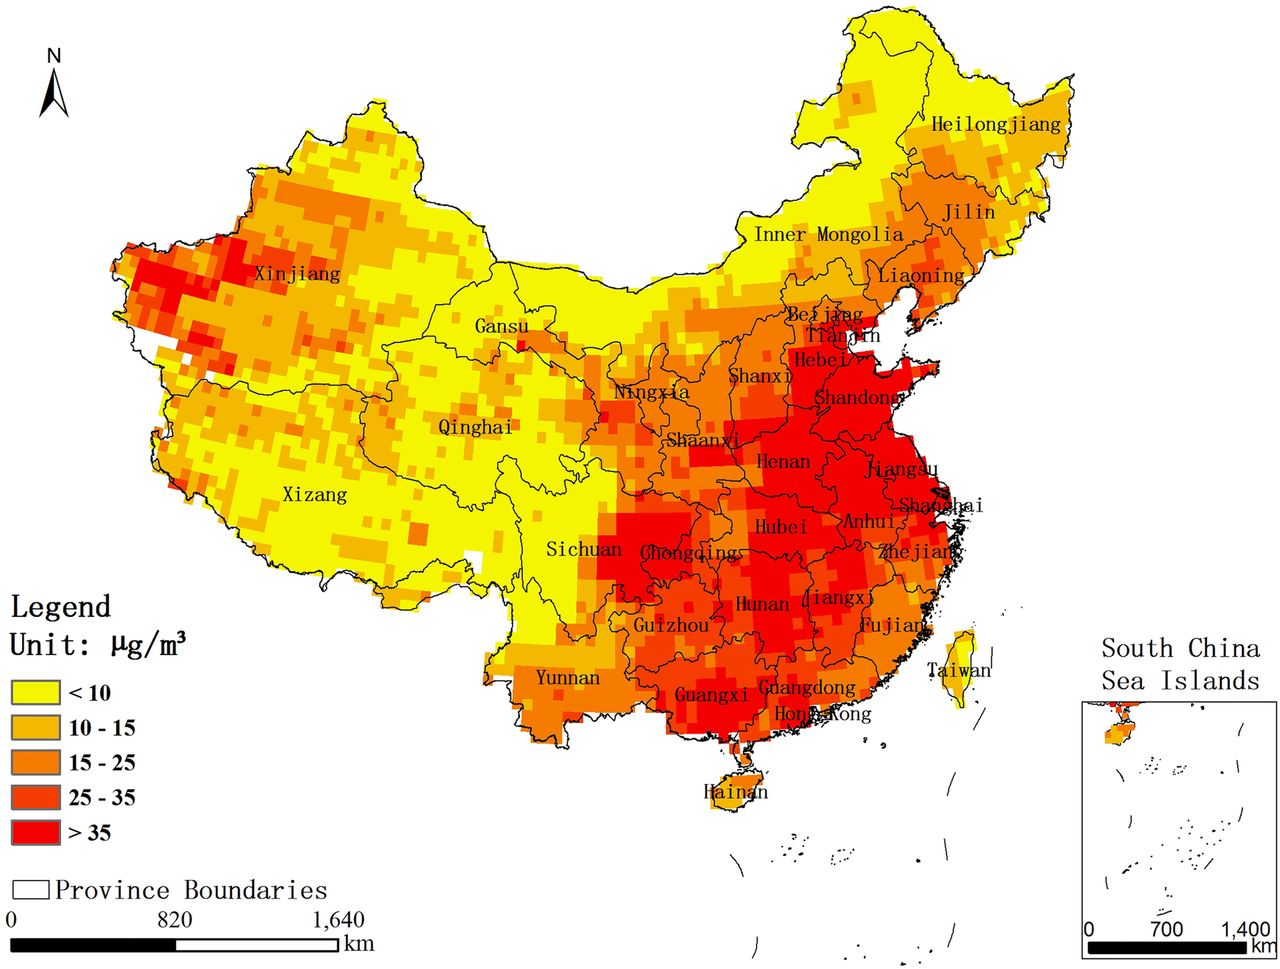 an ecological analysis of pm2 5 concentrations and lung